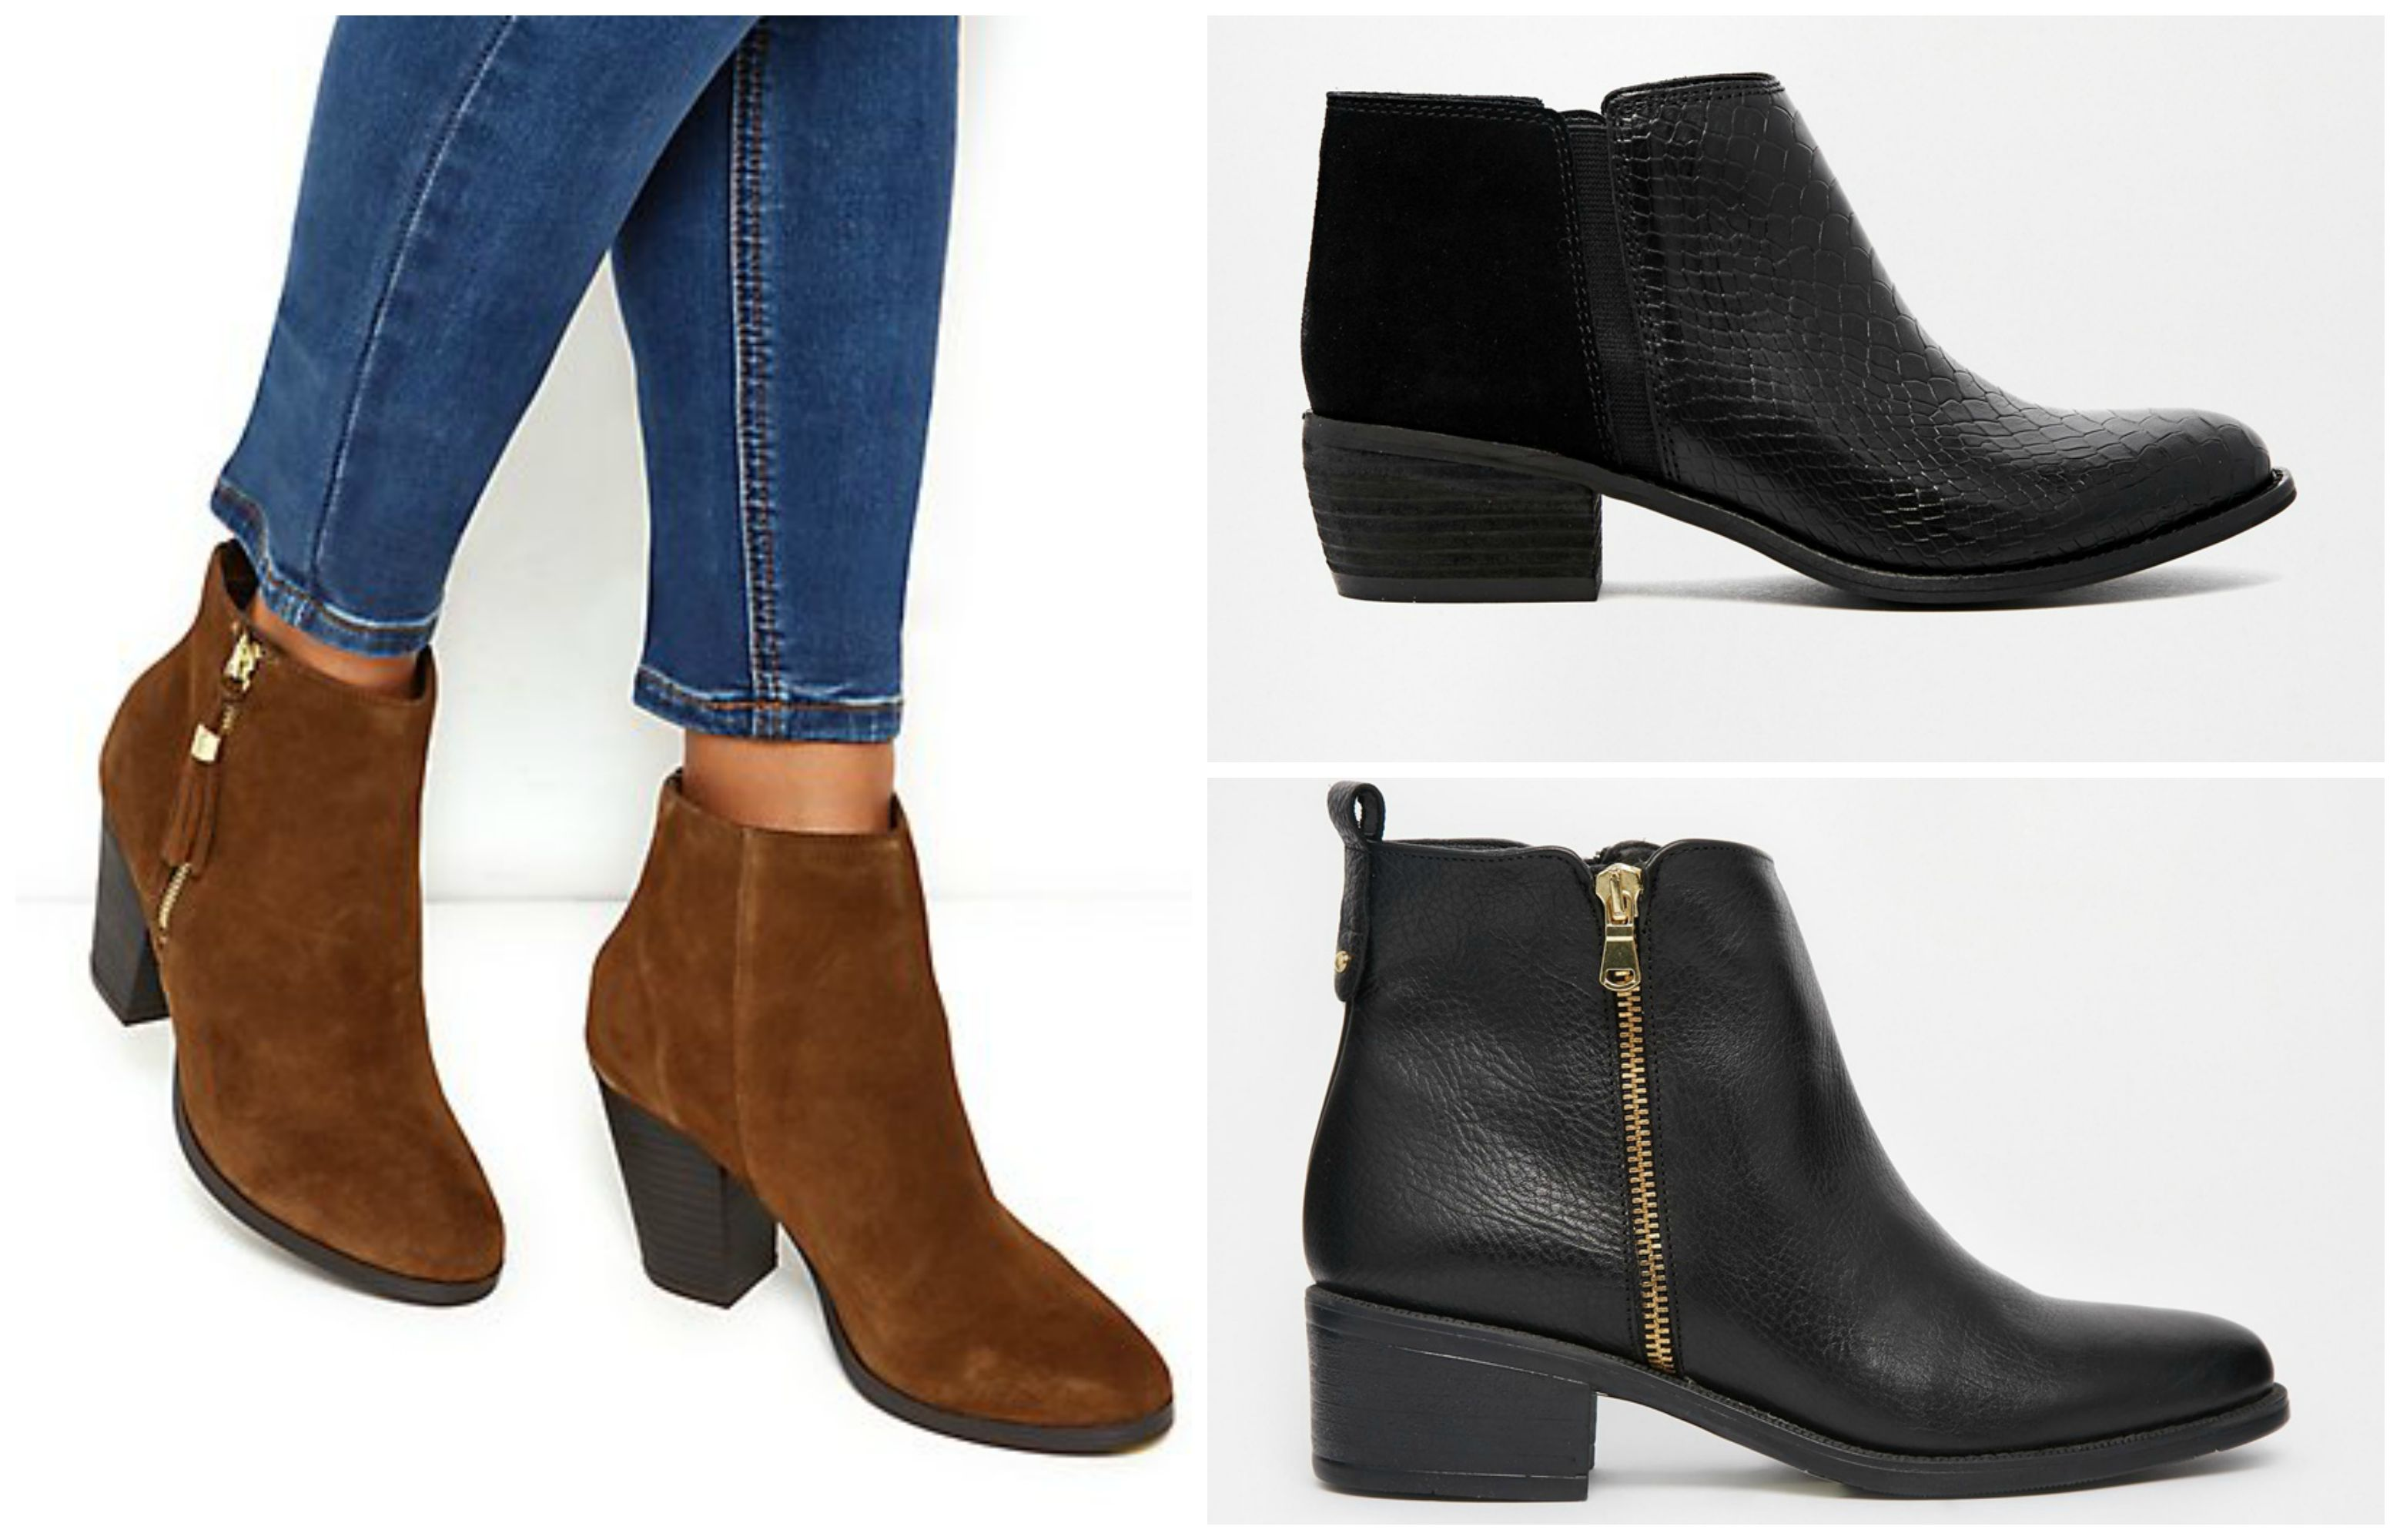 5 great ankle boots for autumn and winter | Everyday 30